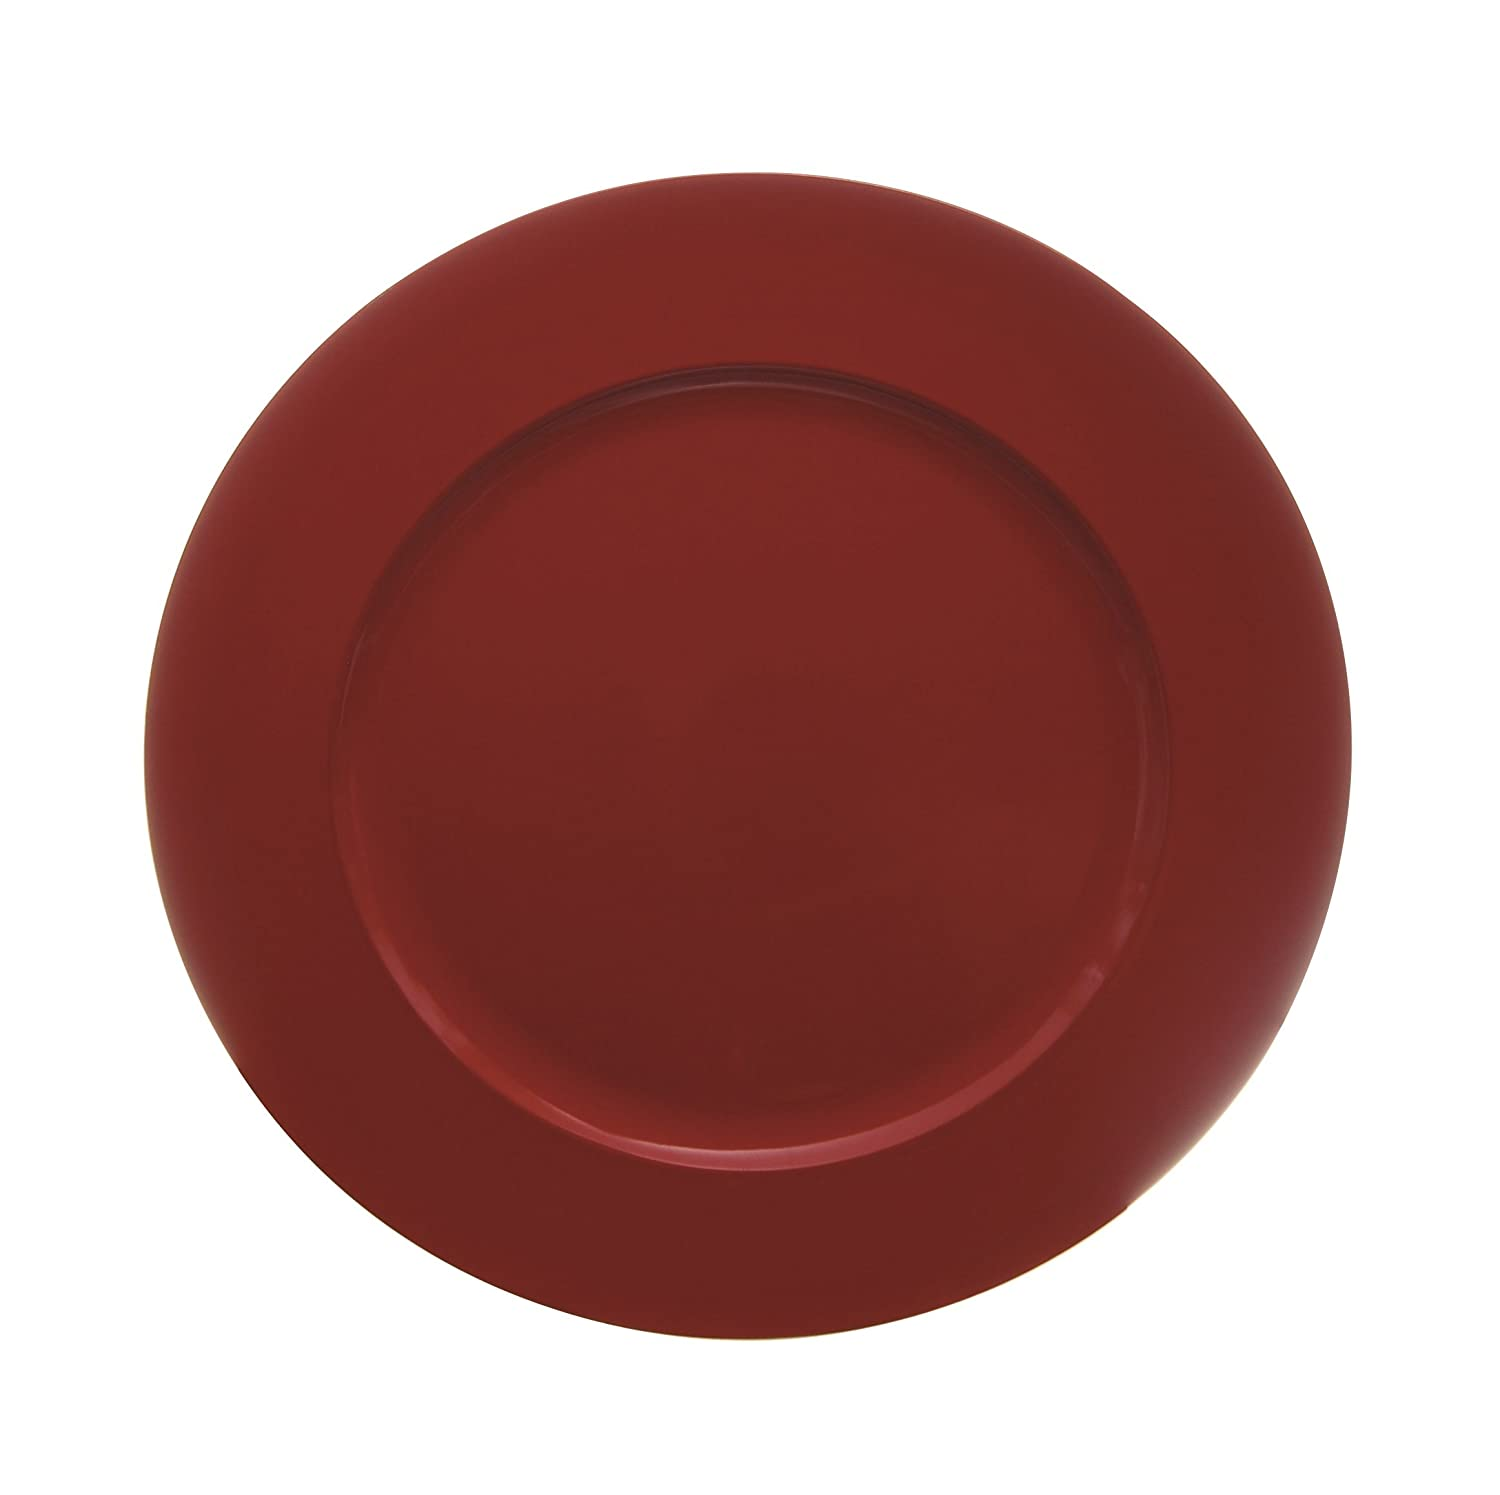 Excèlsa Round Red Charger Plate 33 Cm. Excelsa 32296